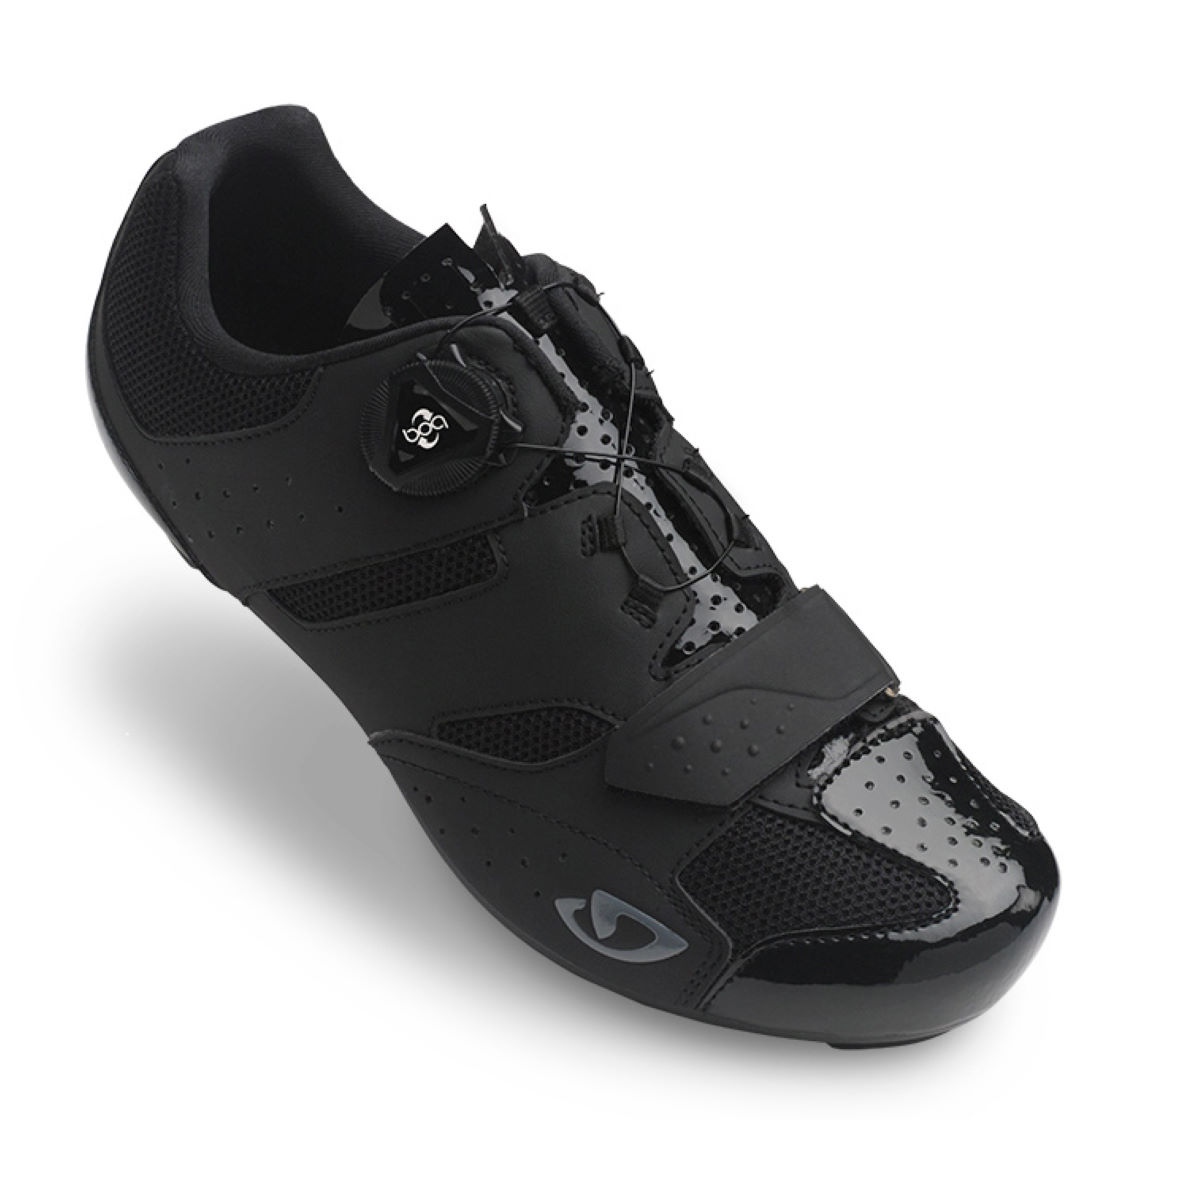 Giro Giro Savix Road Shoes   Cycling Shoes